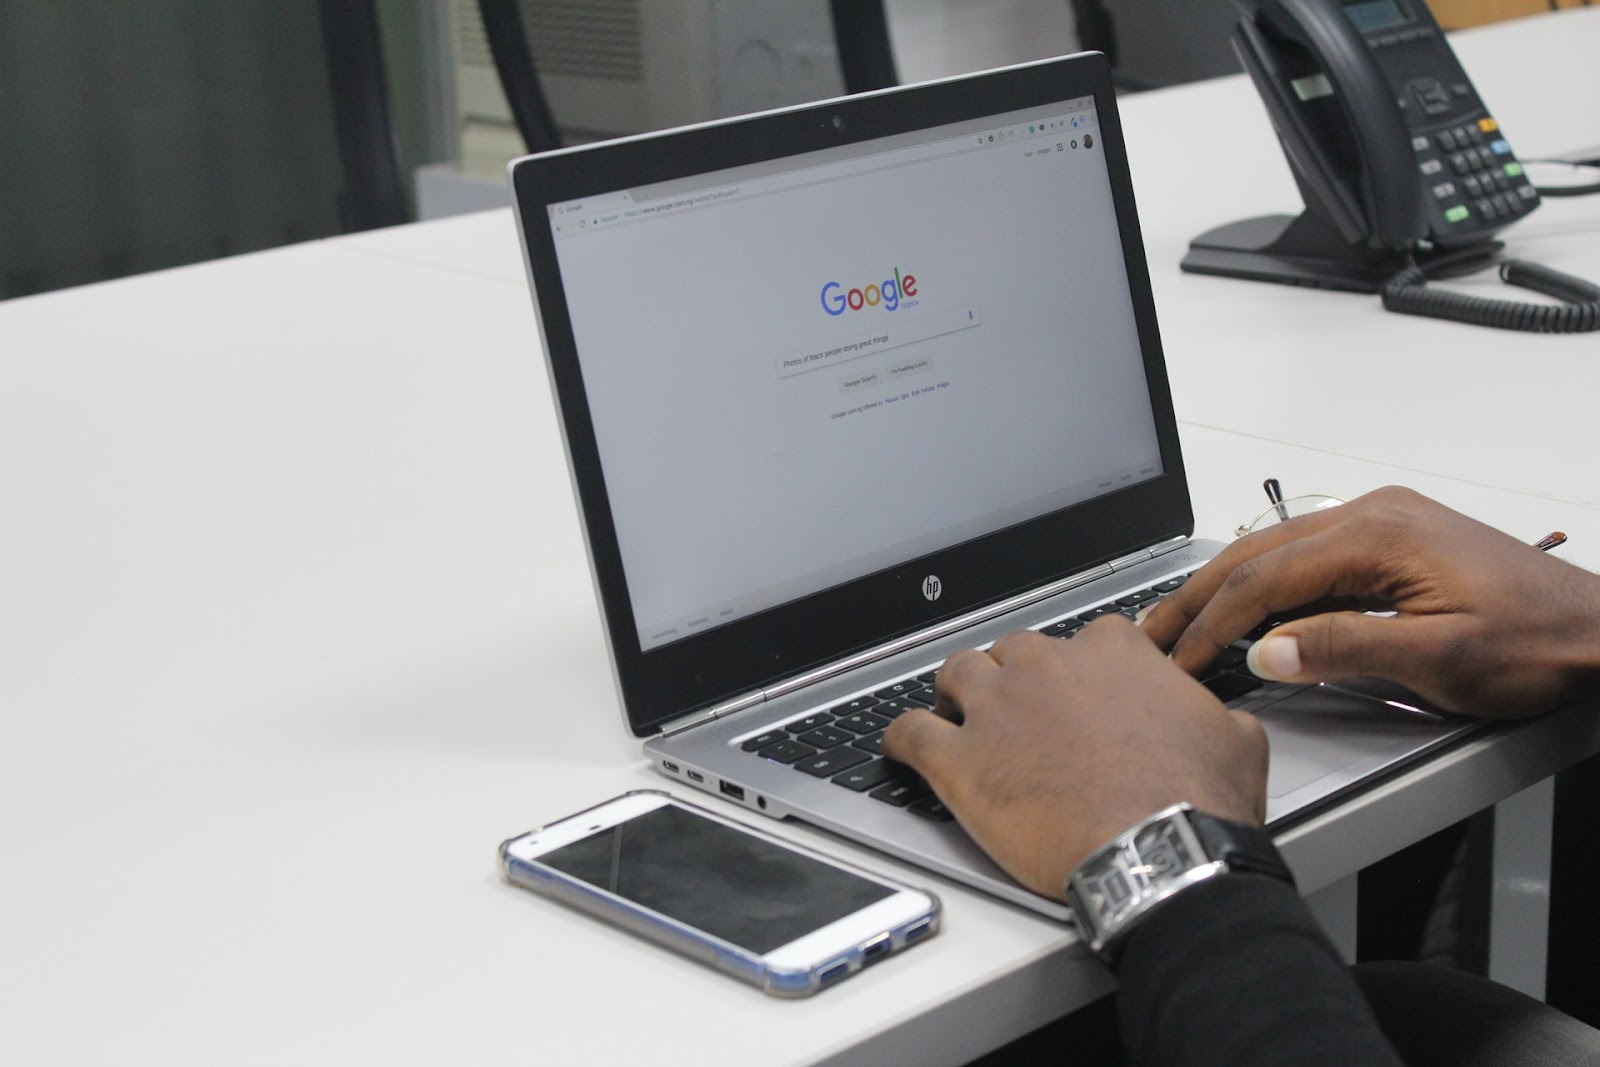 a person's hands typing on an HP laptop with a Google browser open, and an iPhone on the table next to it